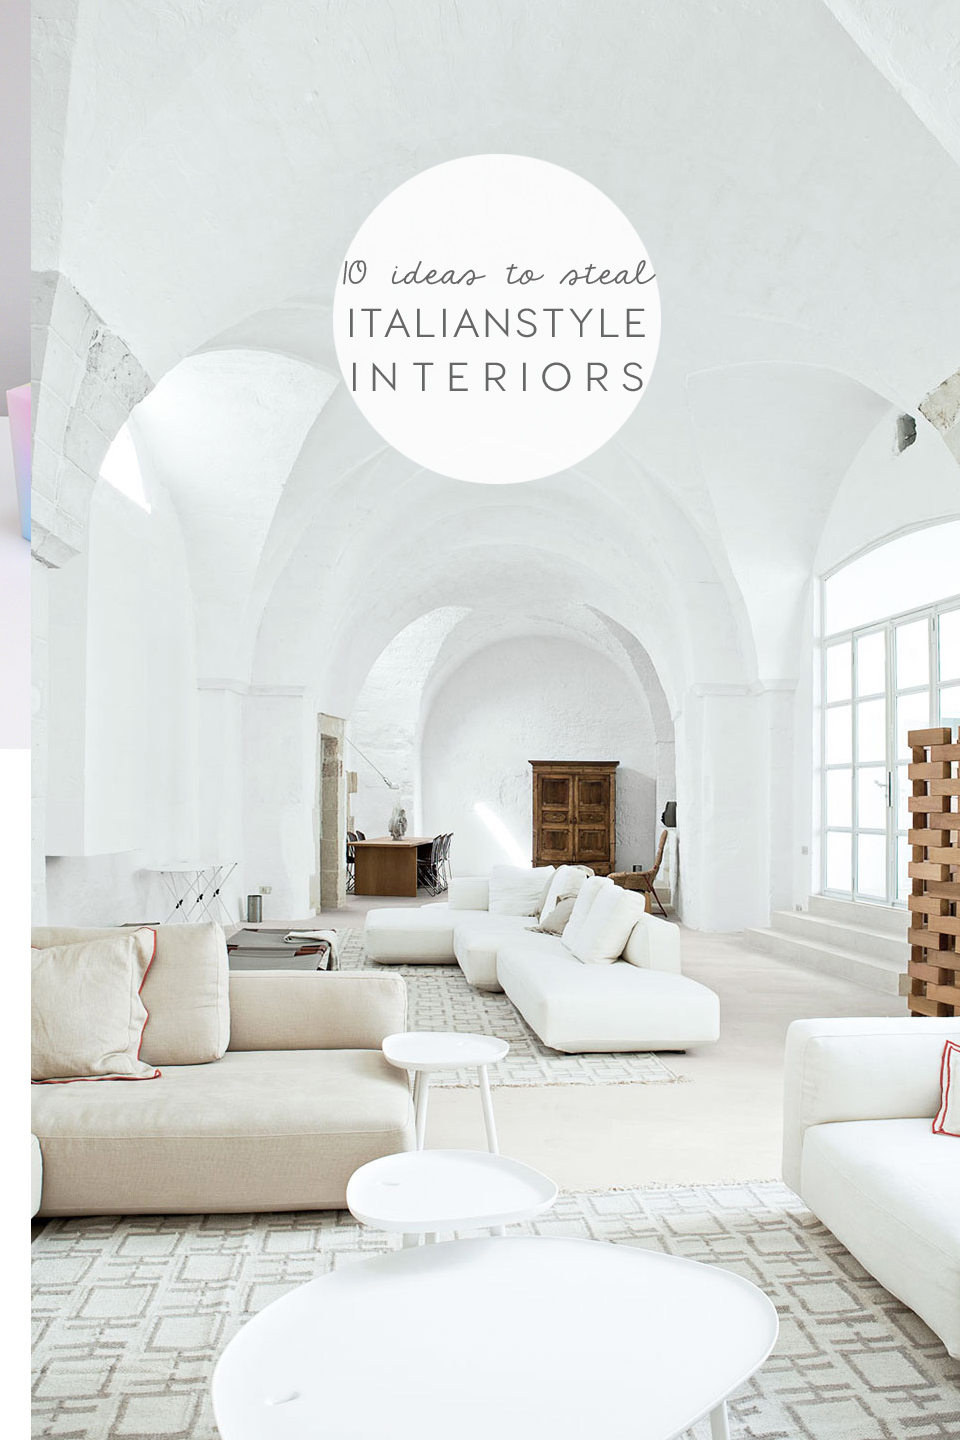 italian style interiors- 10 ideas to steal - ITALIANBARK - interior design blog